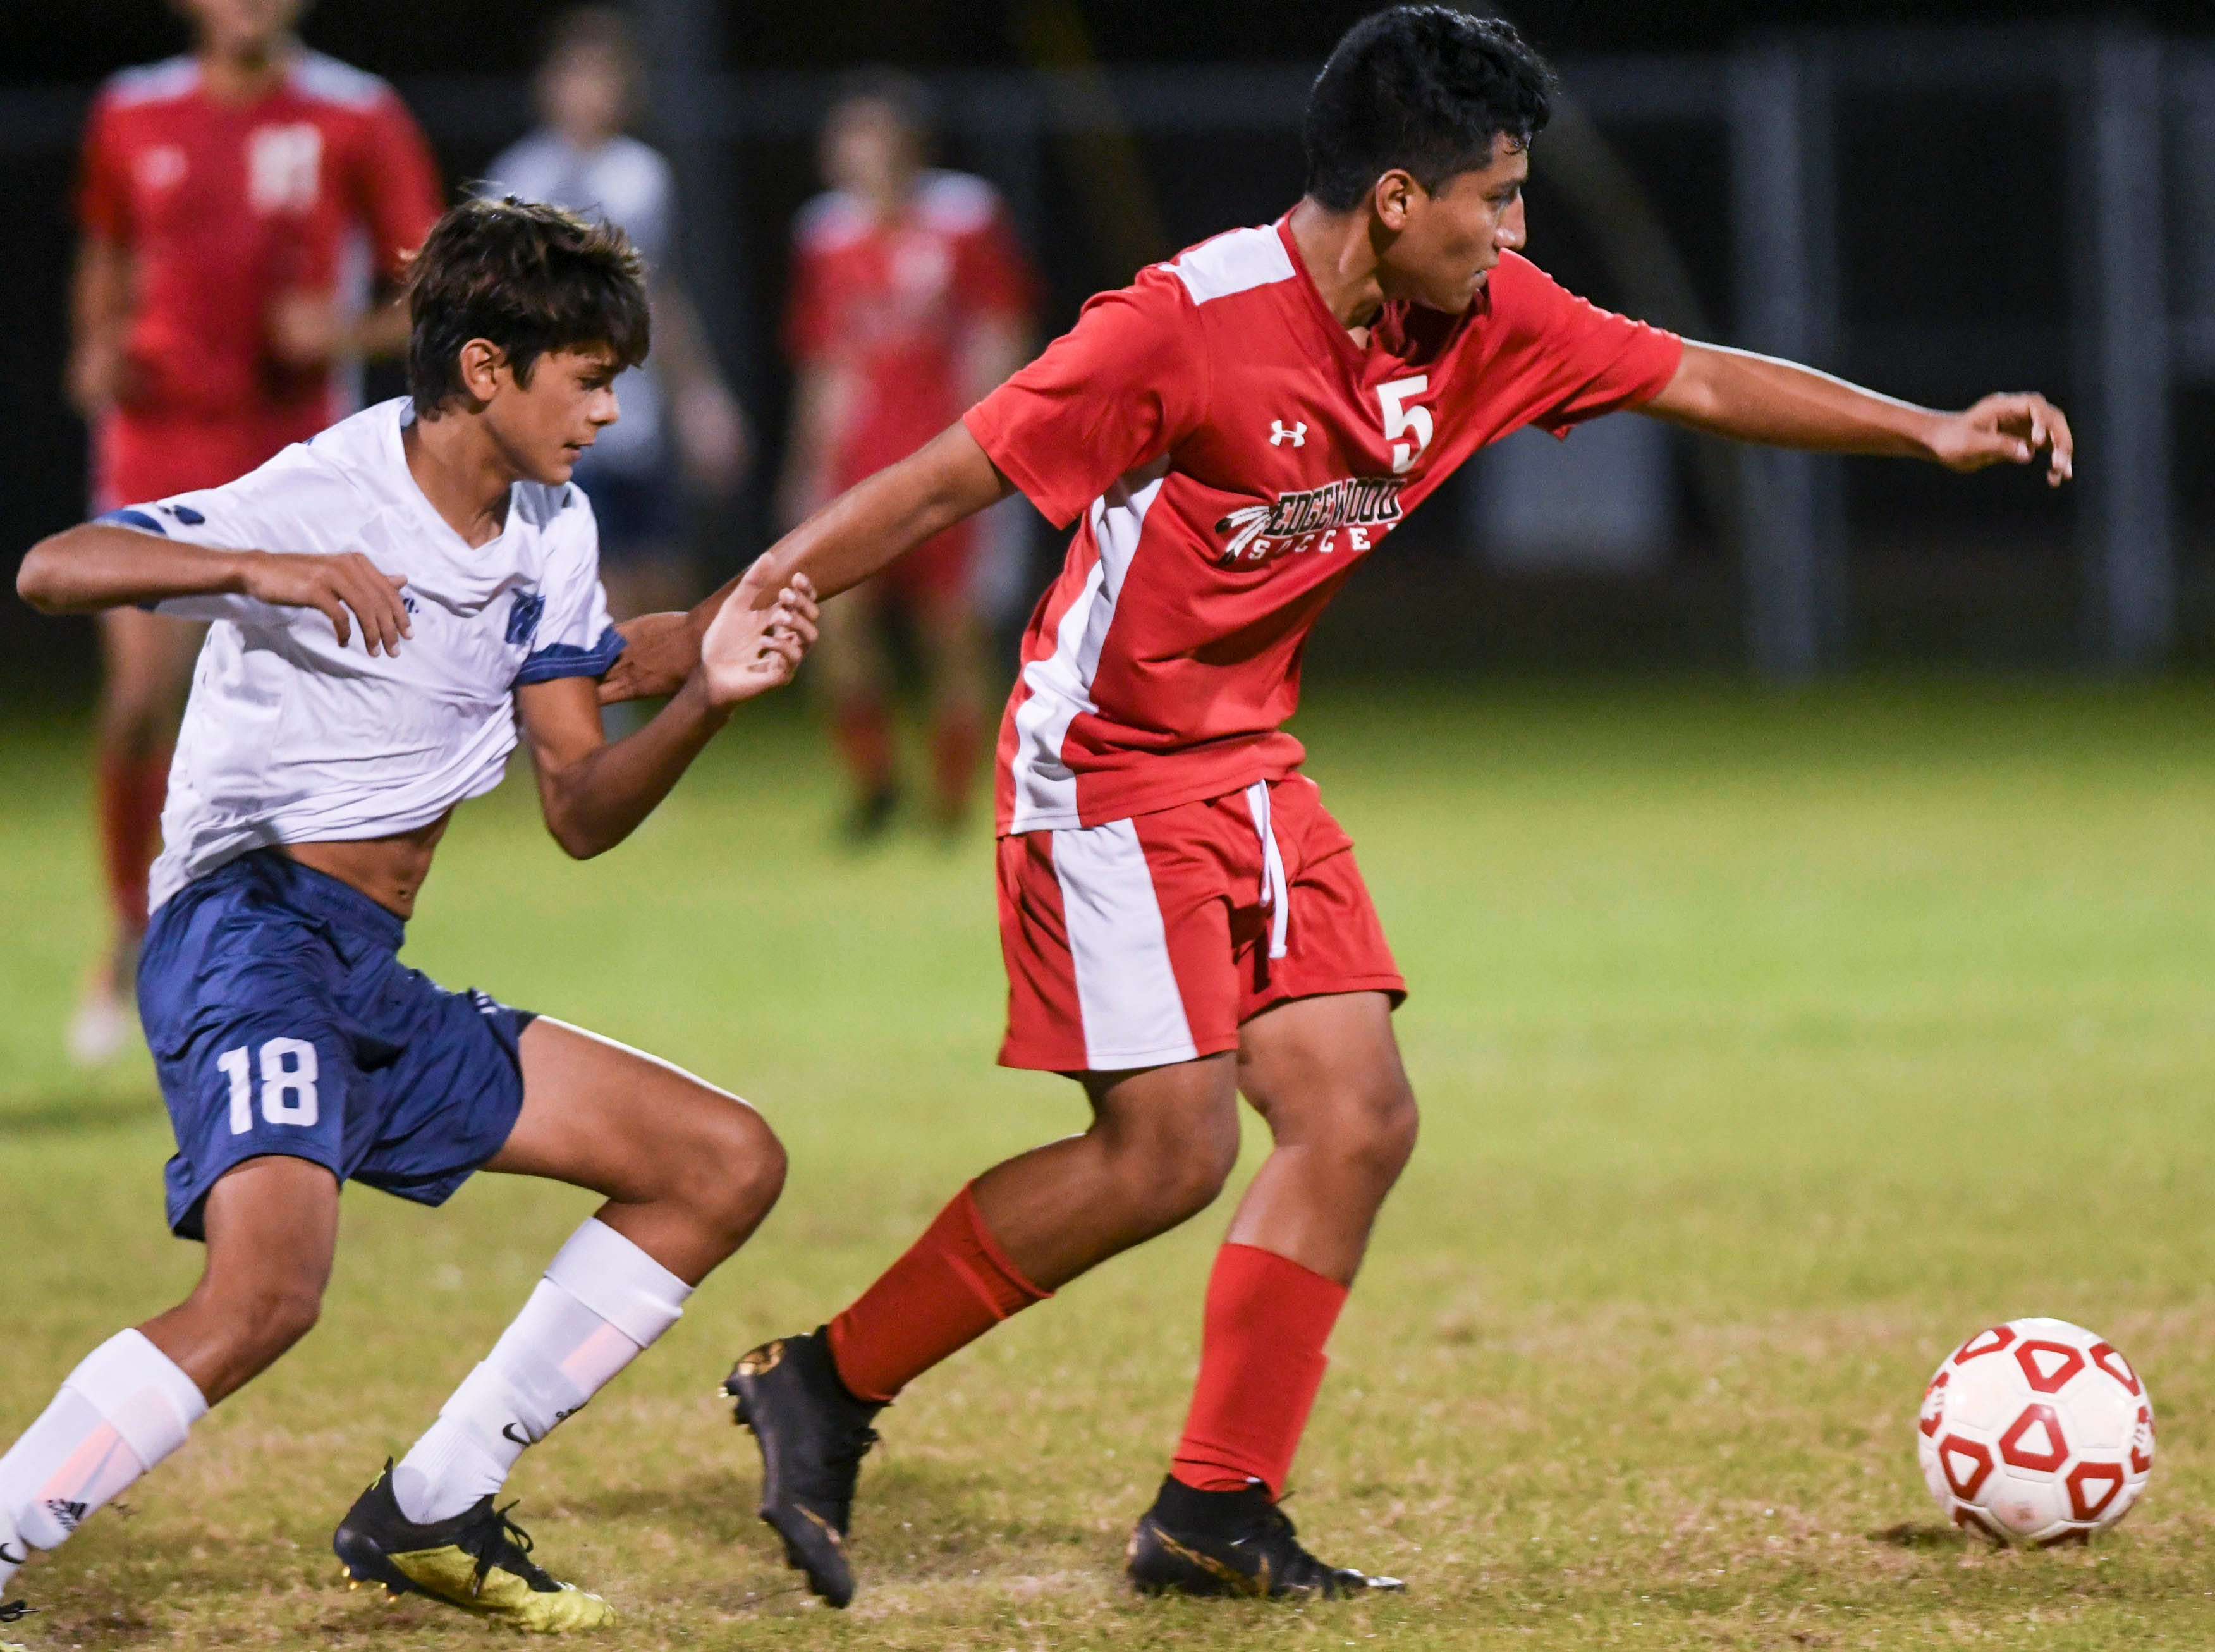 Ian Nemes of West Shore pursues Danny Ordonez of Edgewood during Thursday's Cape Coast Conference championship game.